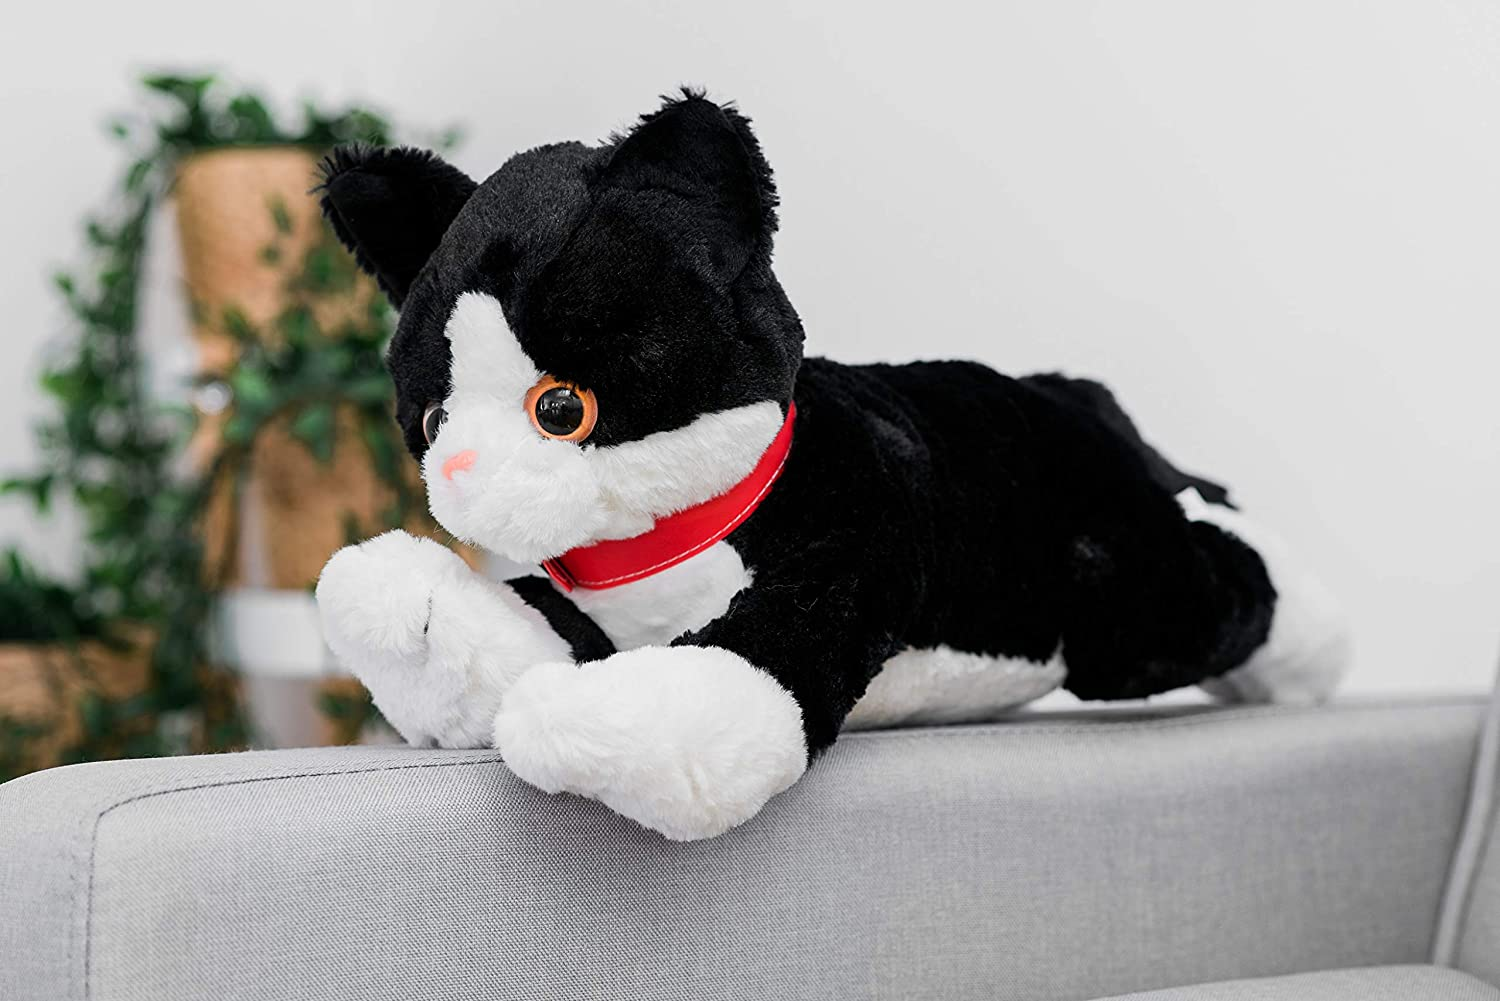 Teddy Cat Kitten Black Bengal Siamese Grumpy Cuddly Plush Soft Toy